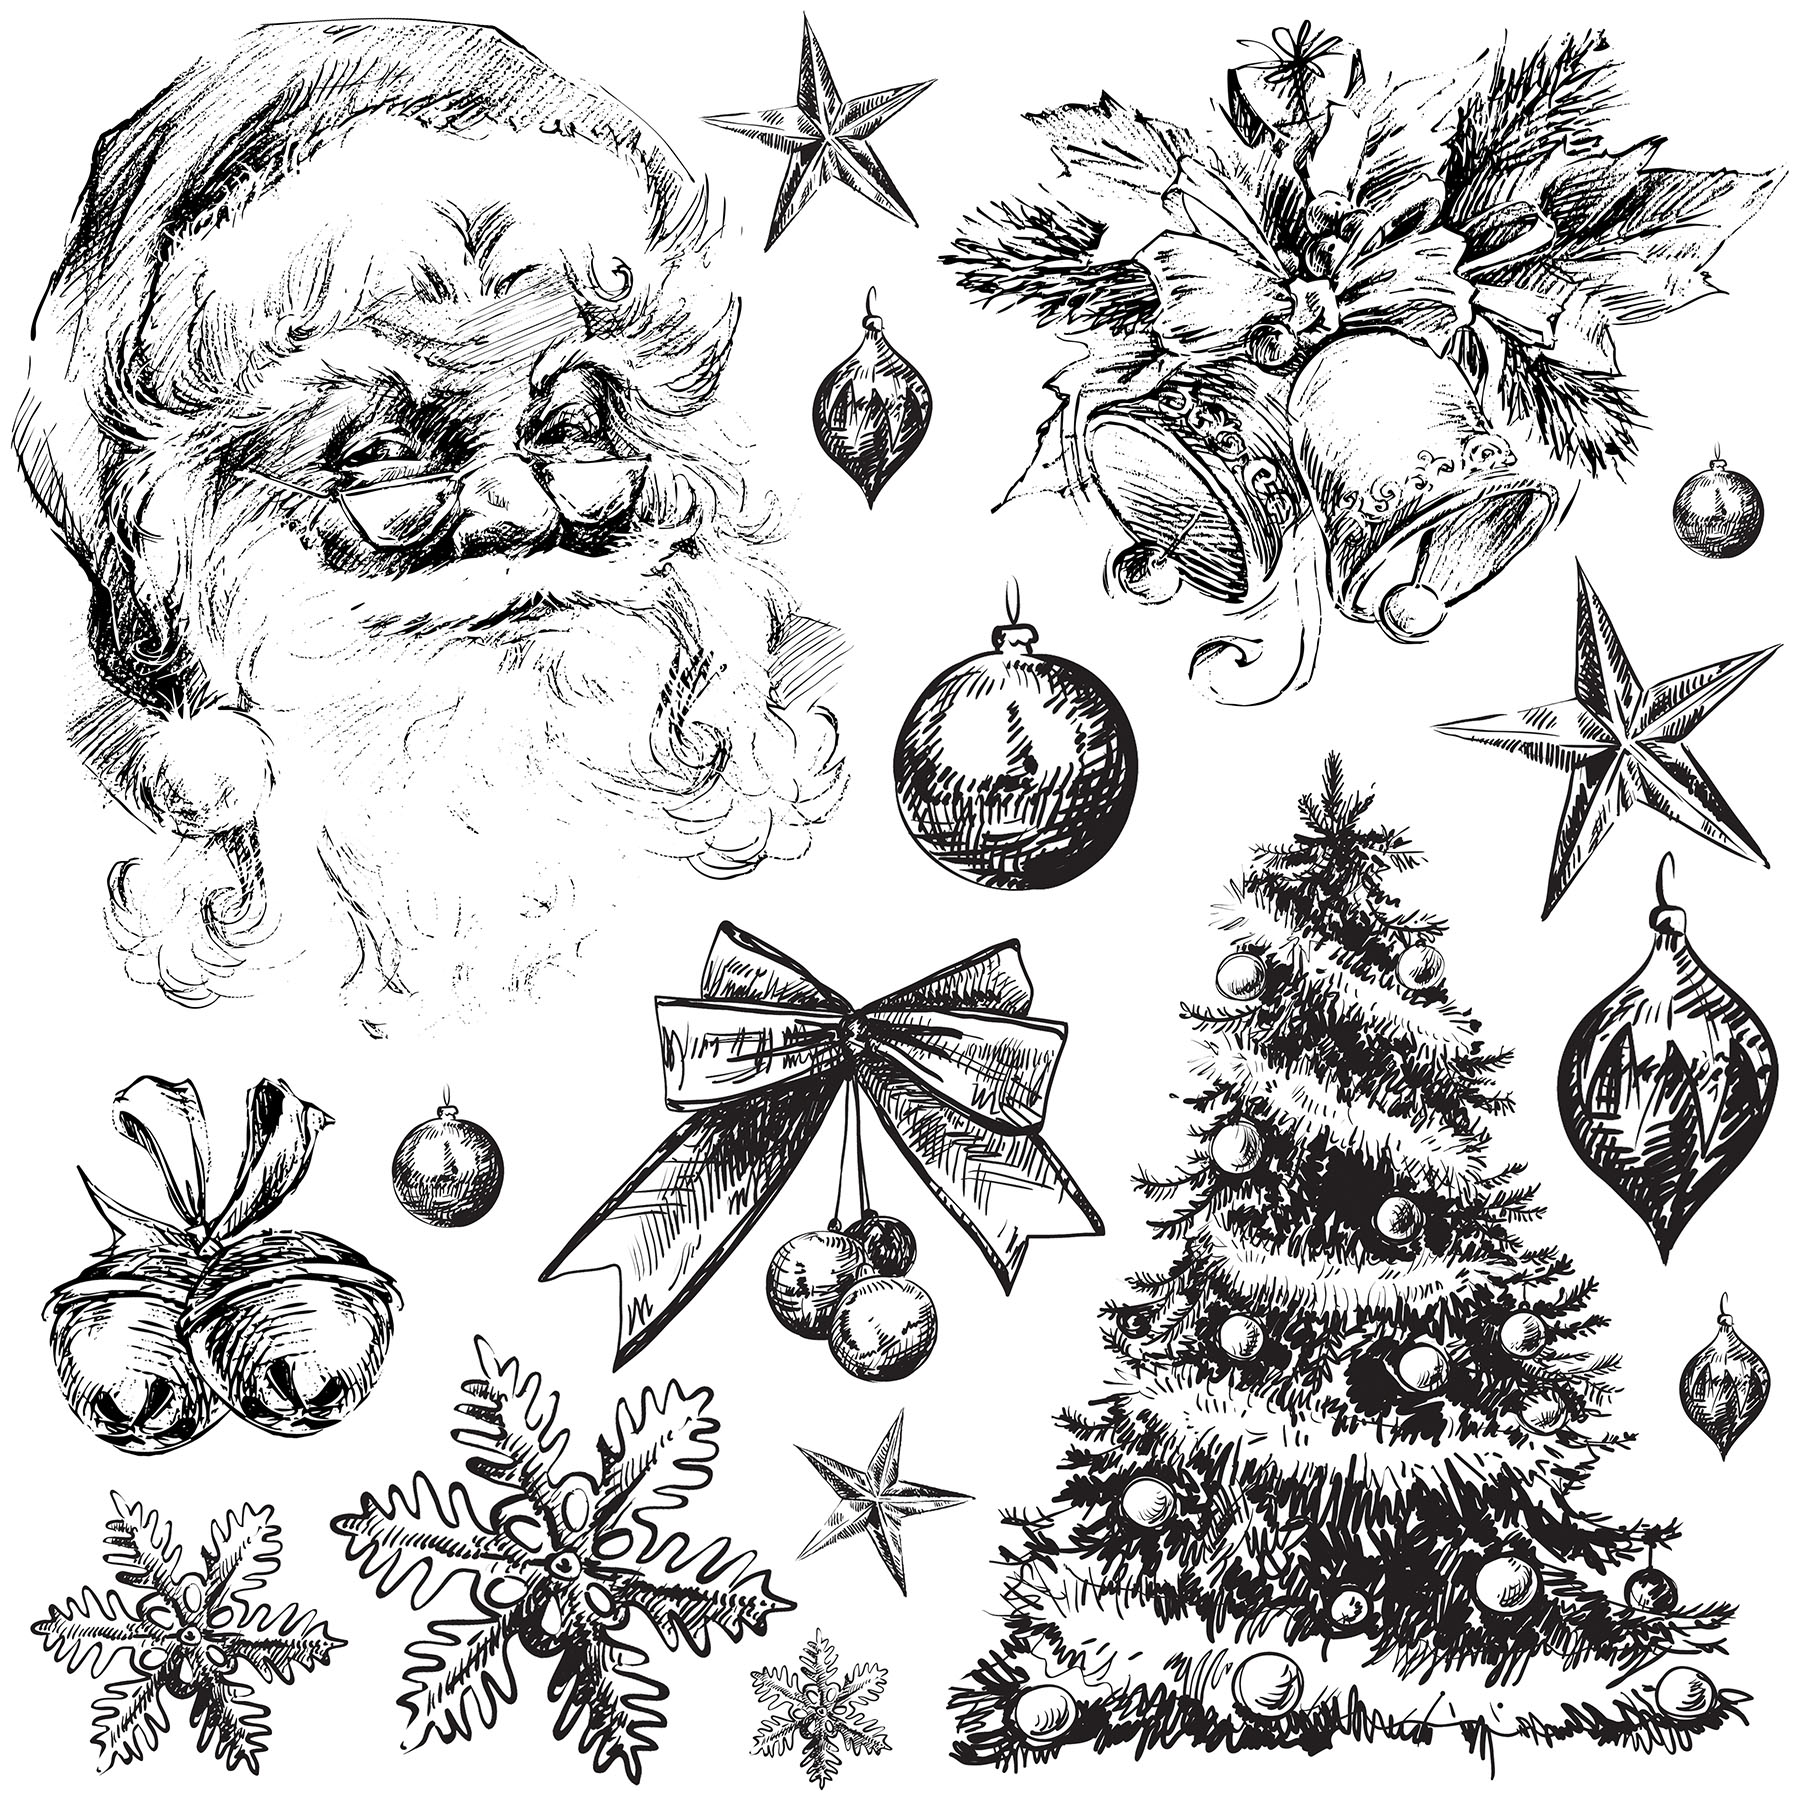 Holly Jolly 12×12 IOD Stamp™ Sold by Byefield Emporium